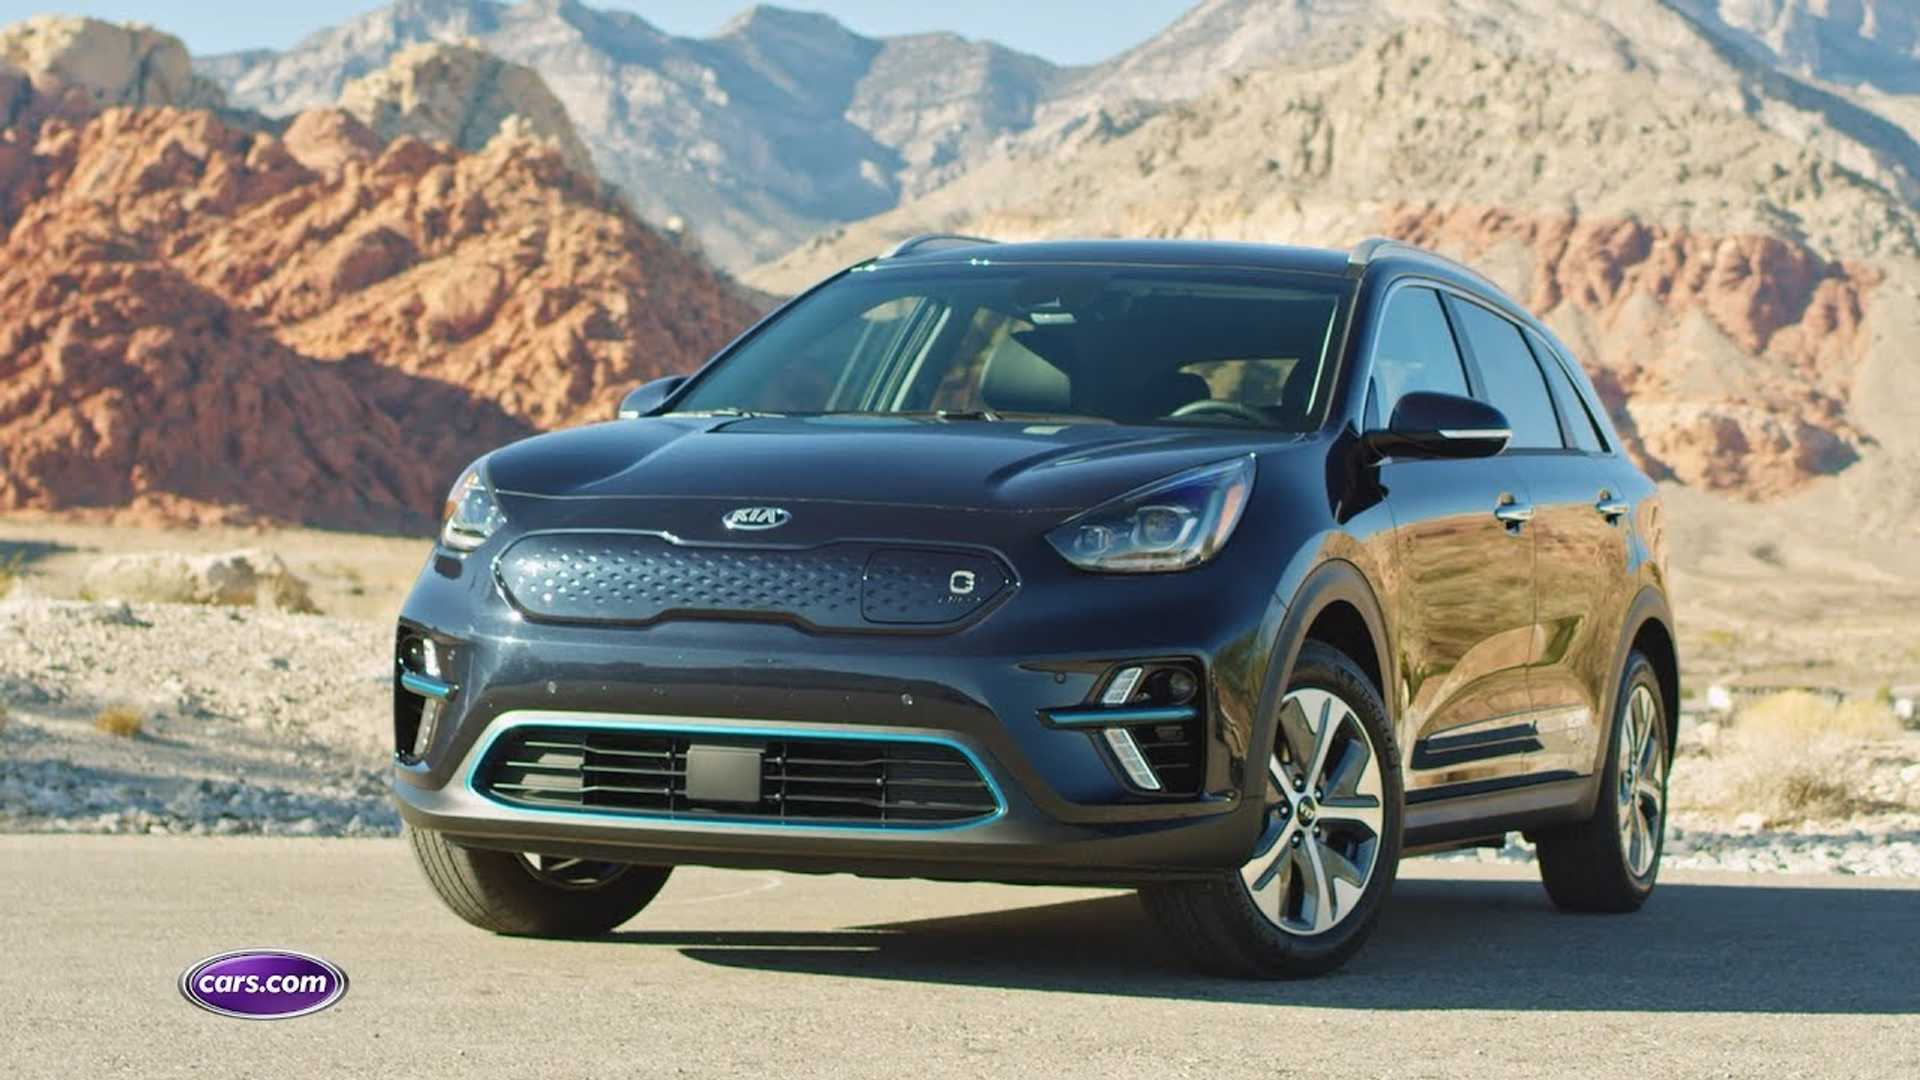 Cars Com Reviews >> Let S Compare Reviews Kia Niro Ev First Drive By Cars Com Autotrader